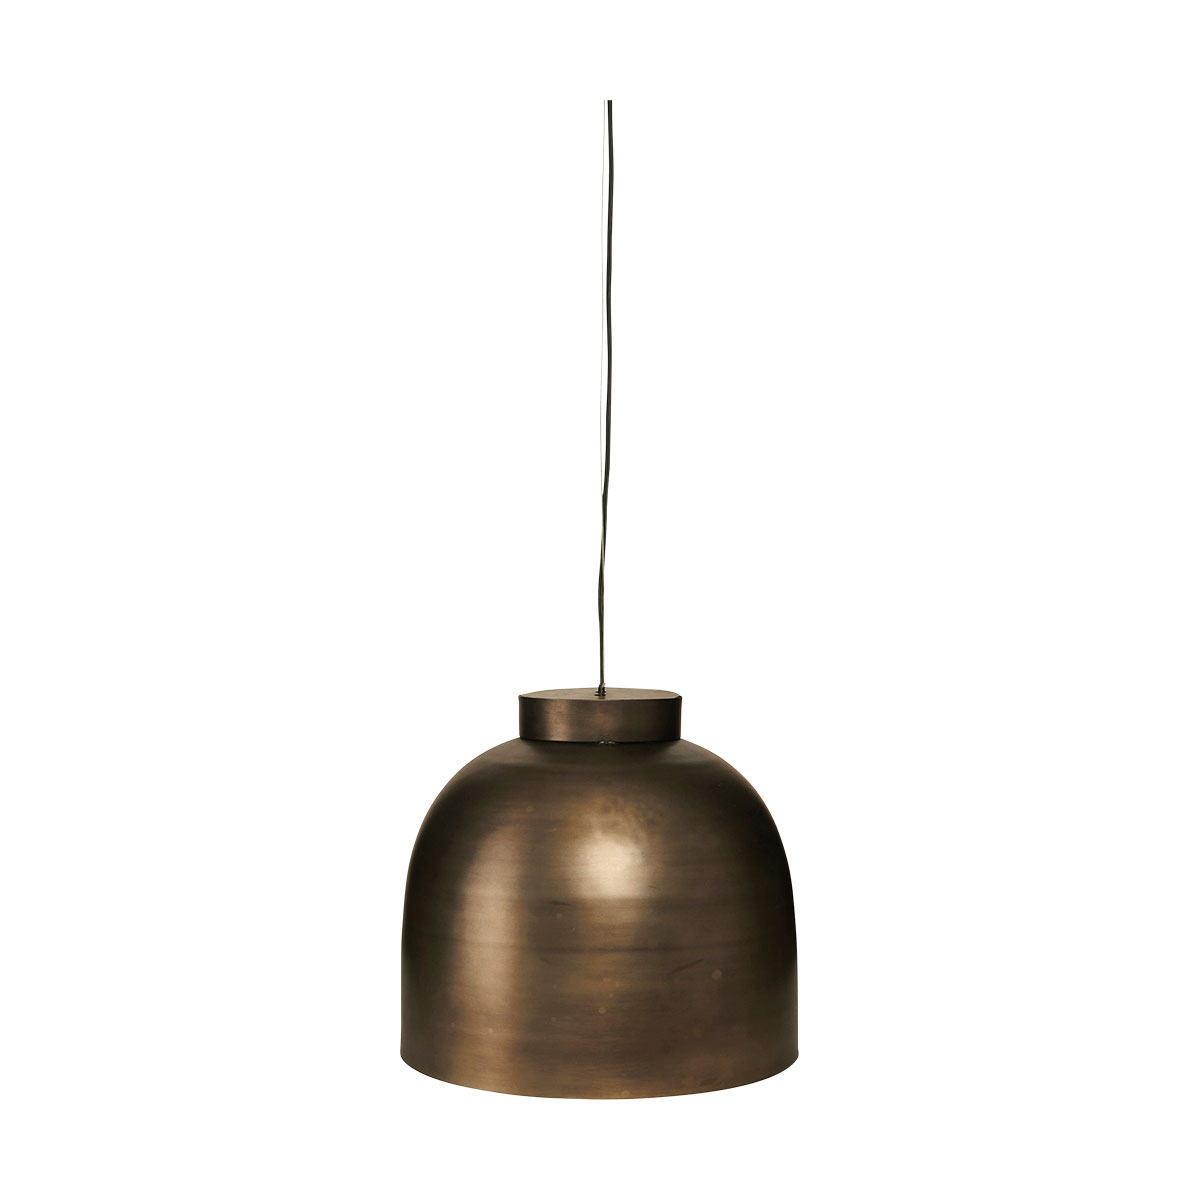 Image of   HOUSE DOCTOR Bowl loftslampe - gunmetal (Ø 35)